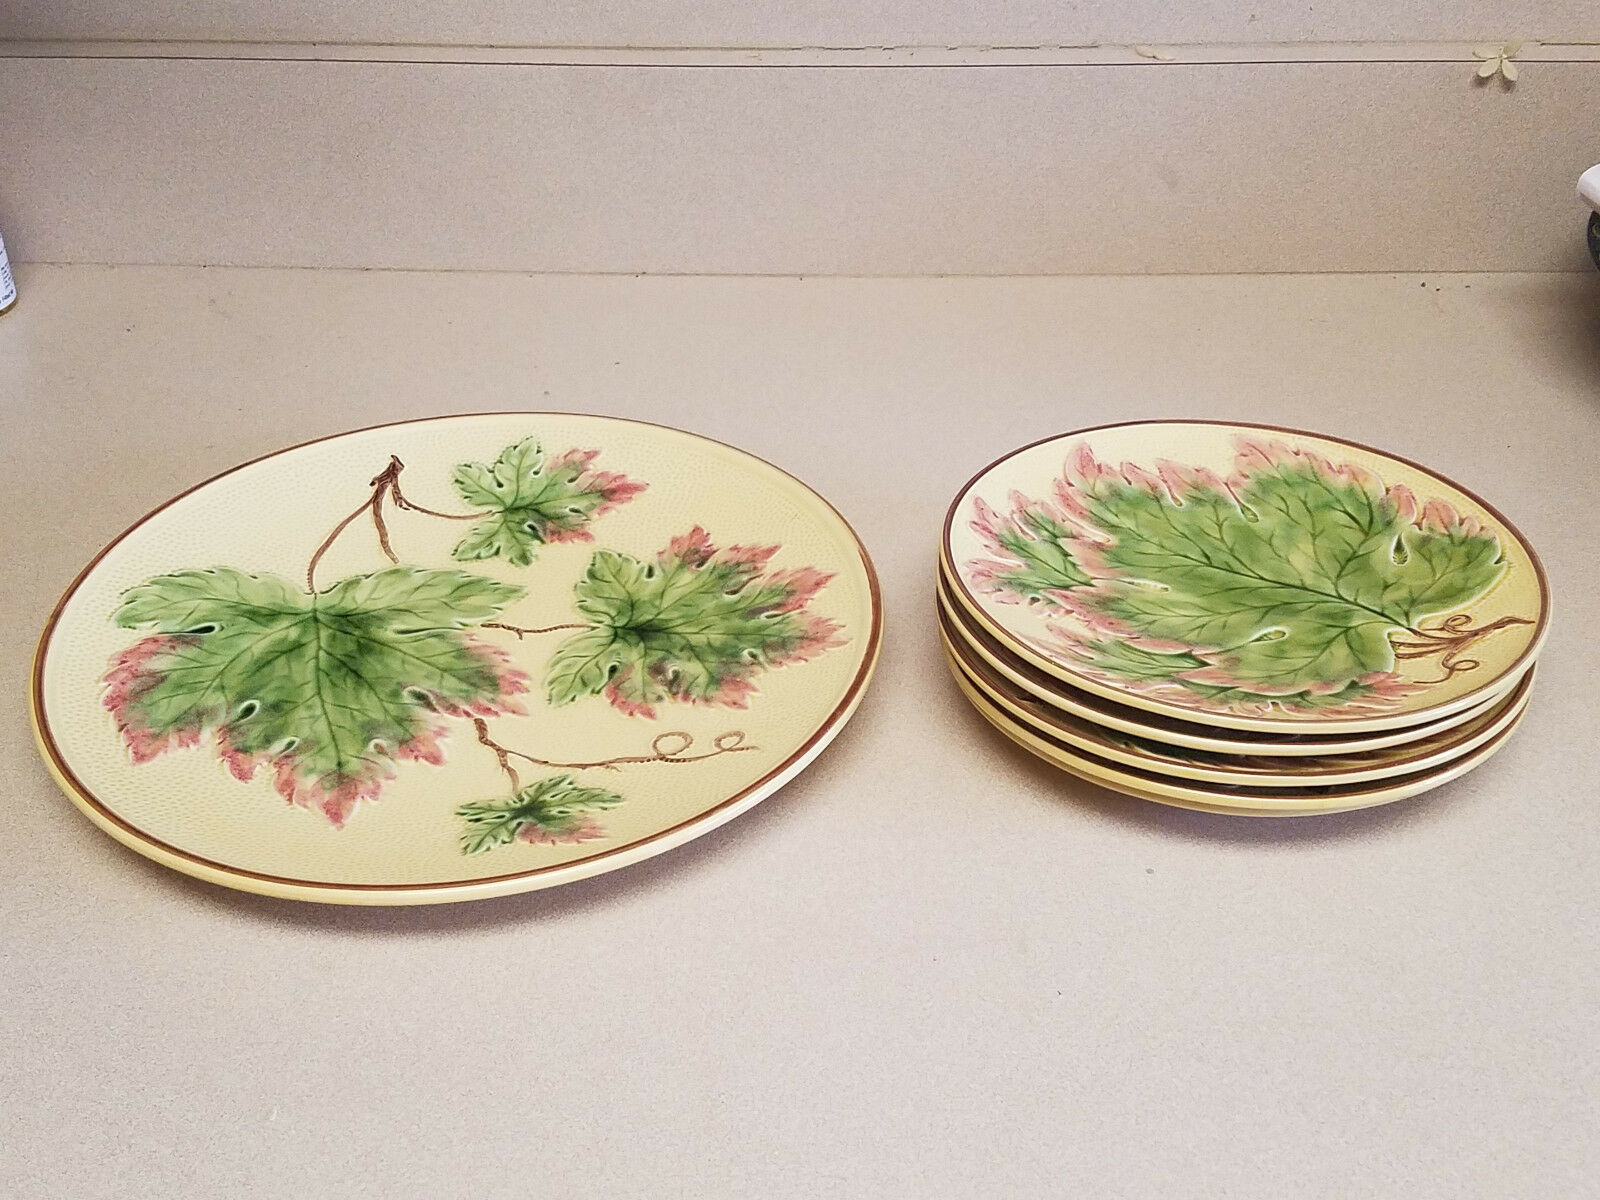 VINTAGE SET OF SIX (6) MAJOLICA POTTERY LEAF PLATES MADE IN GERMANY